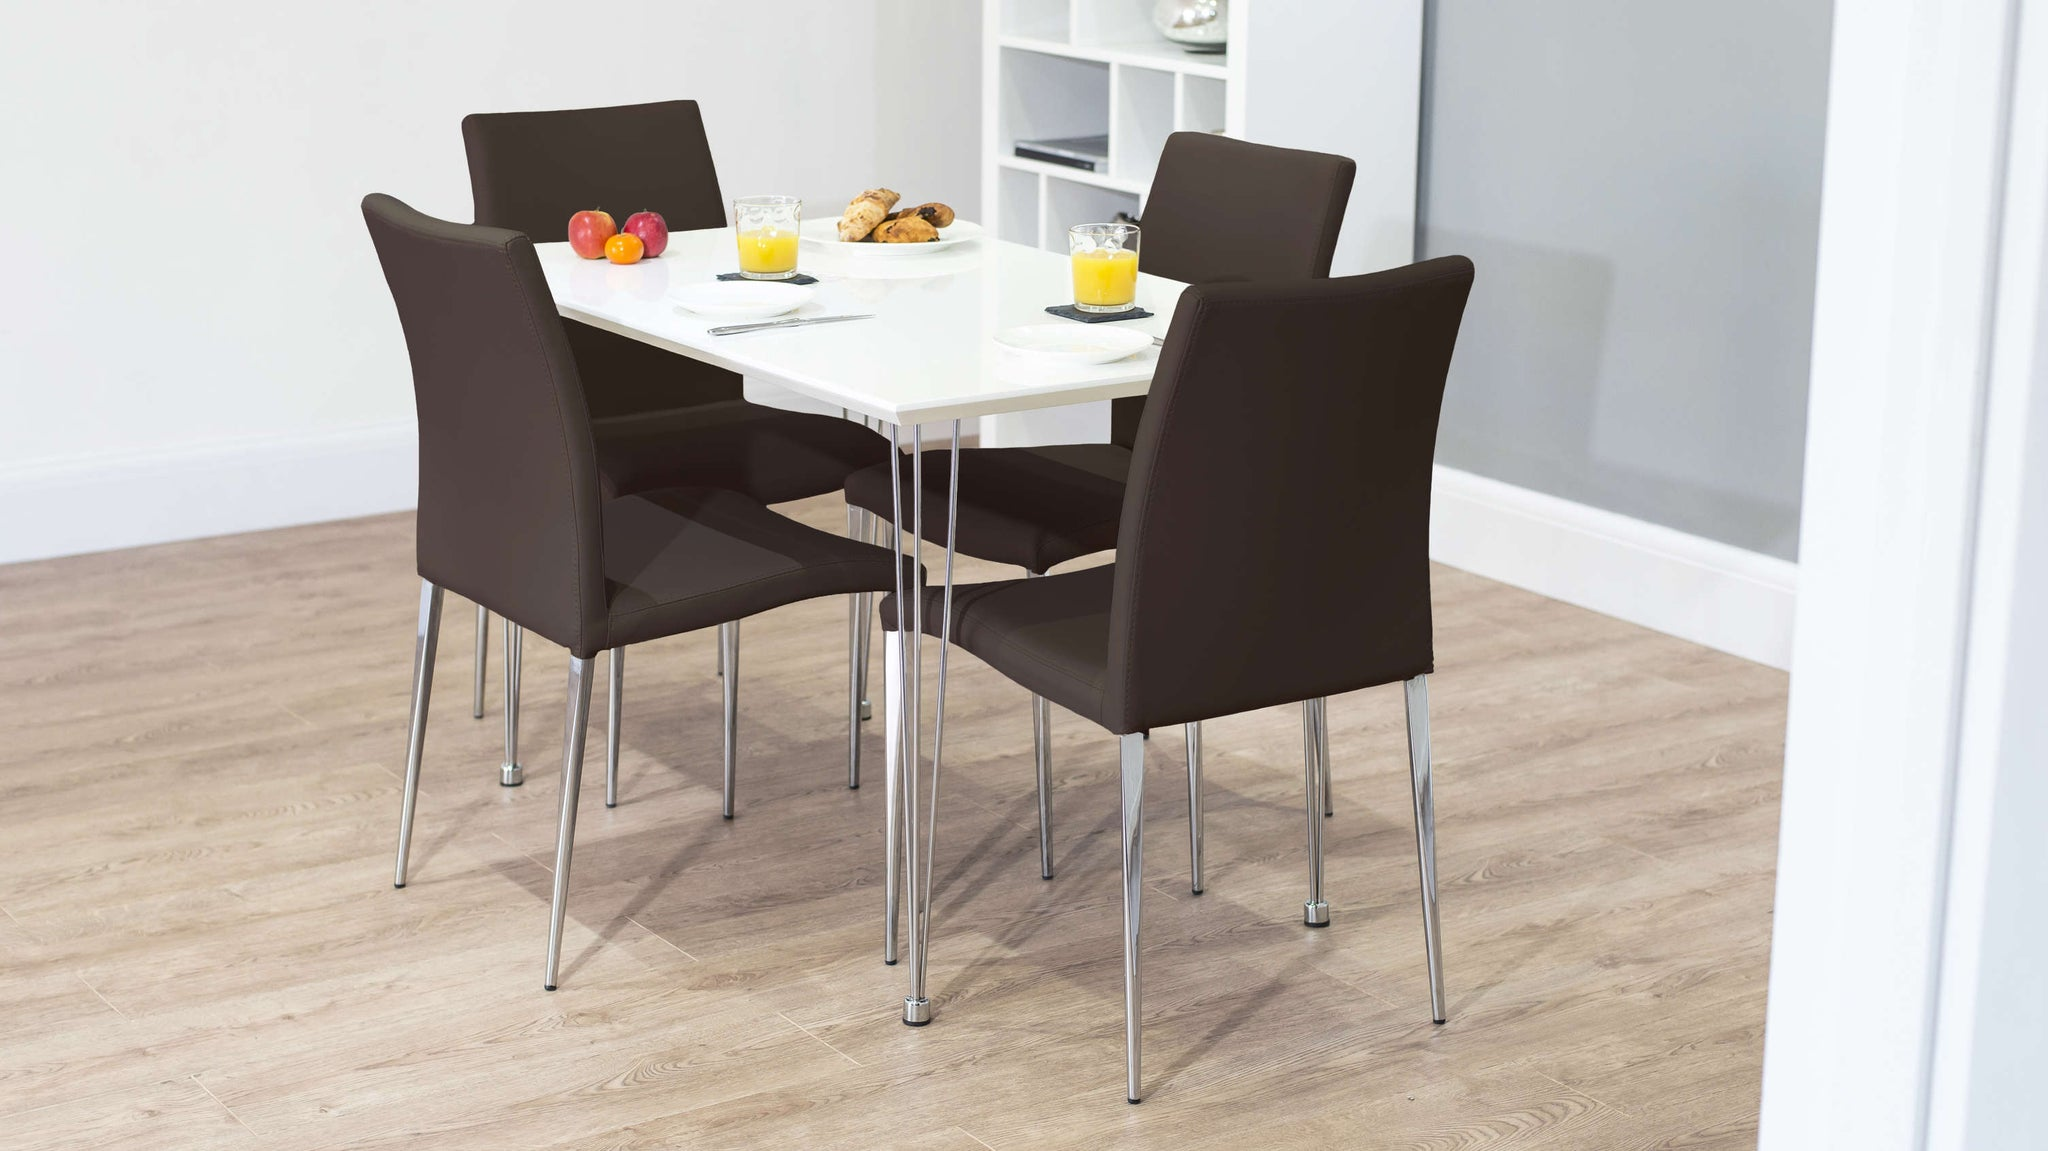 Stylish Brown Dining Chairs and Small Dining Table